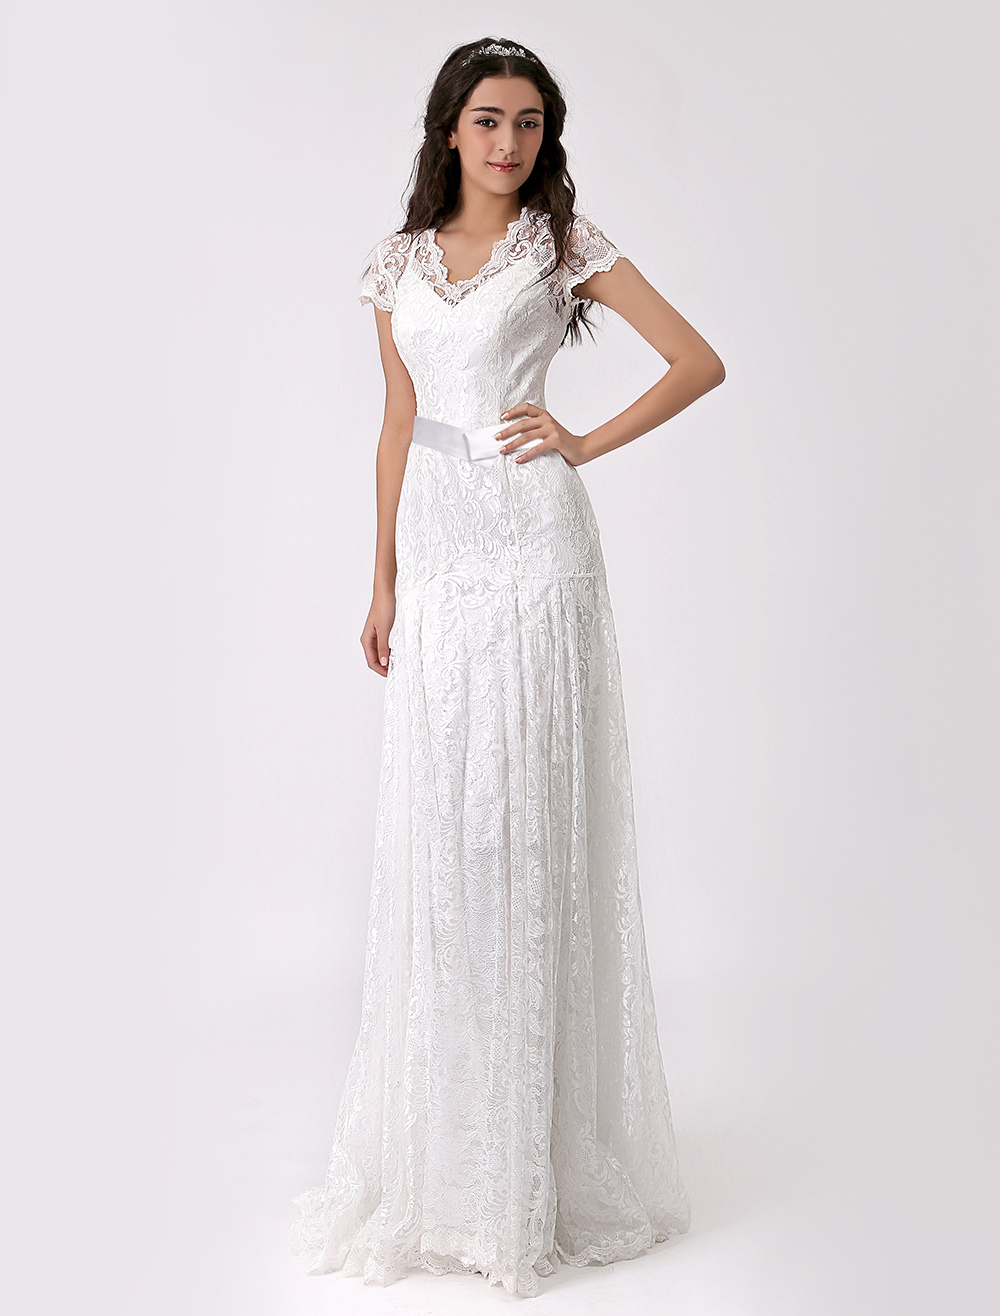 Two Piece Chiffon Bridal Gown with Lace Overlay Milanoo